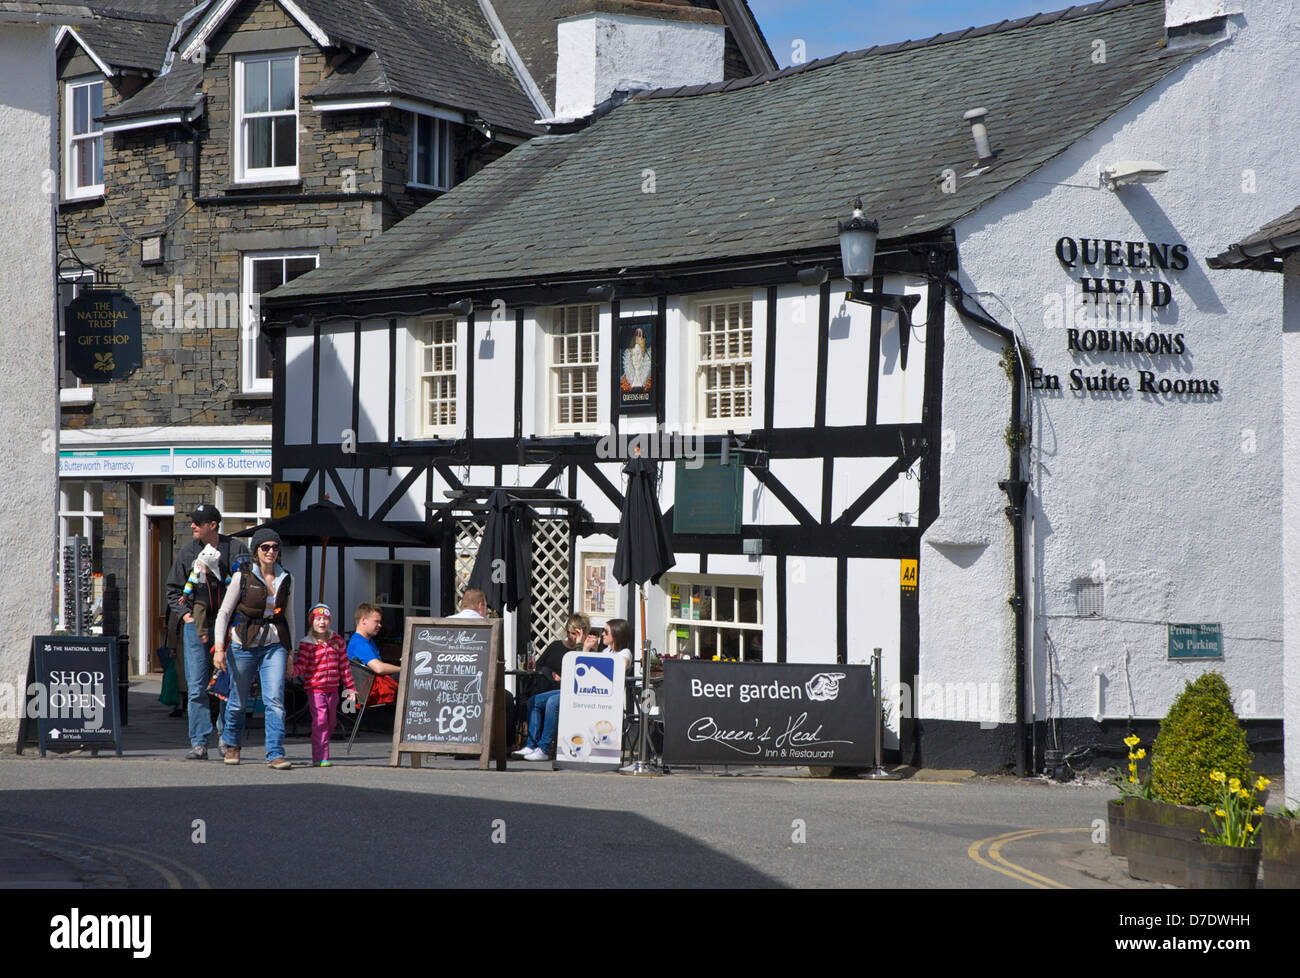 the queens head fowlmere